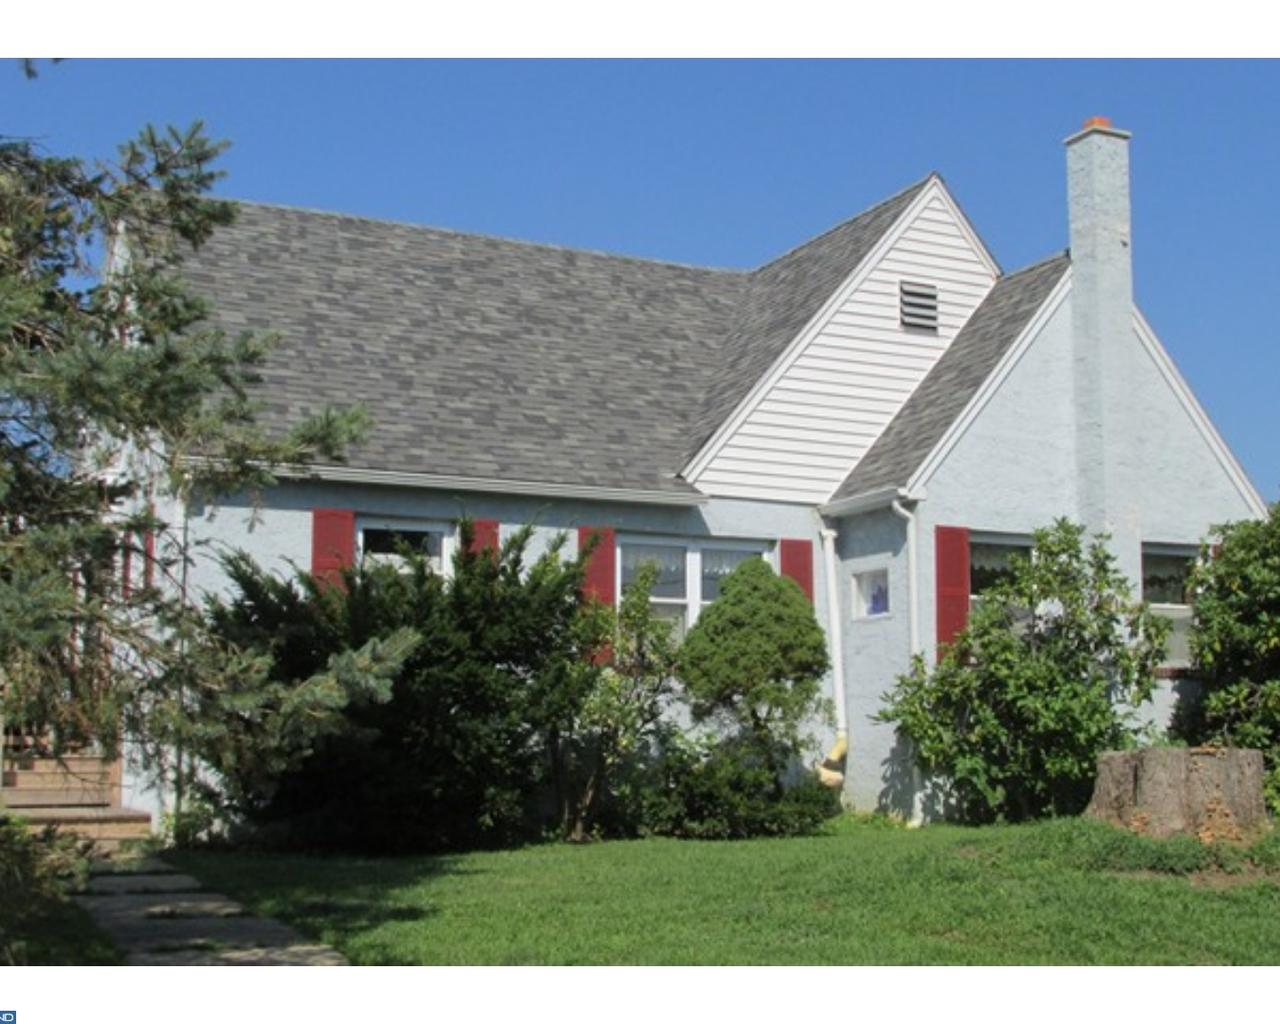 Property for sale at 700 3RD AVE, Parkesburg,  PA 19365